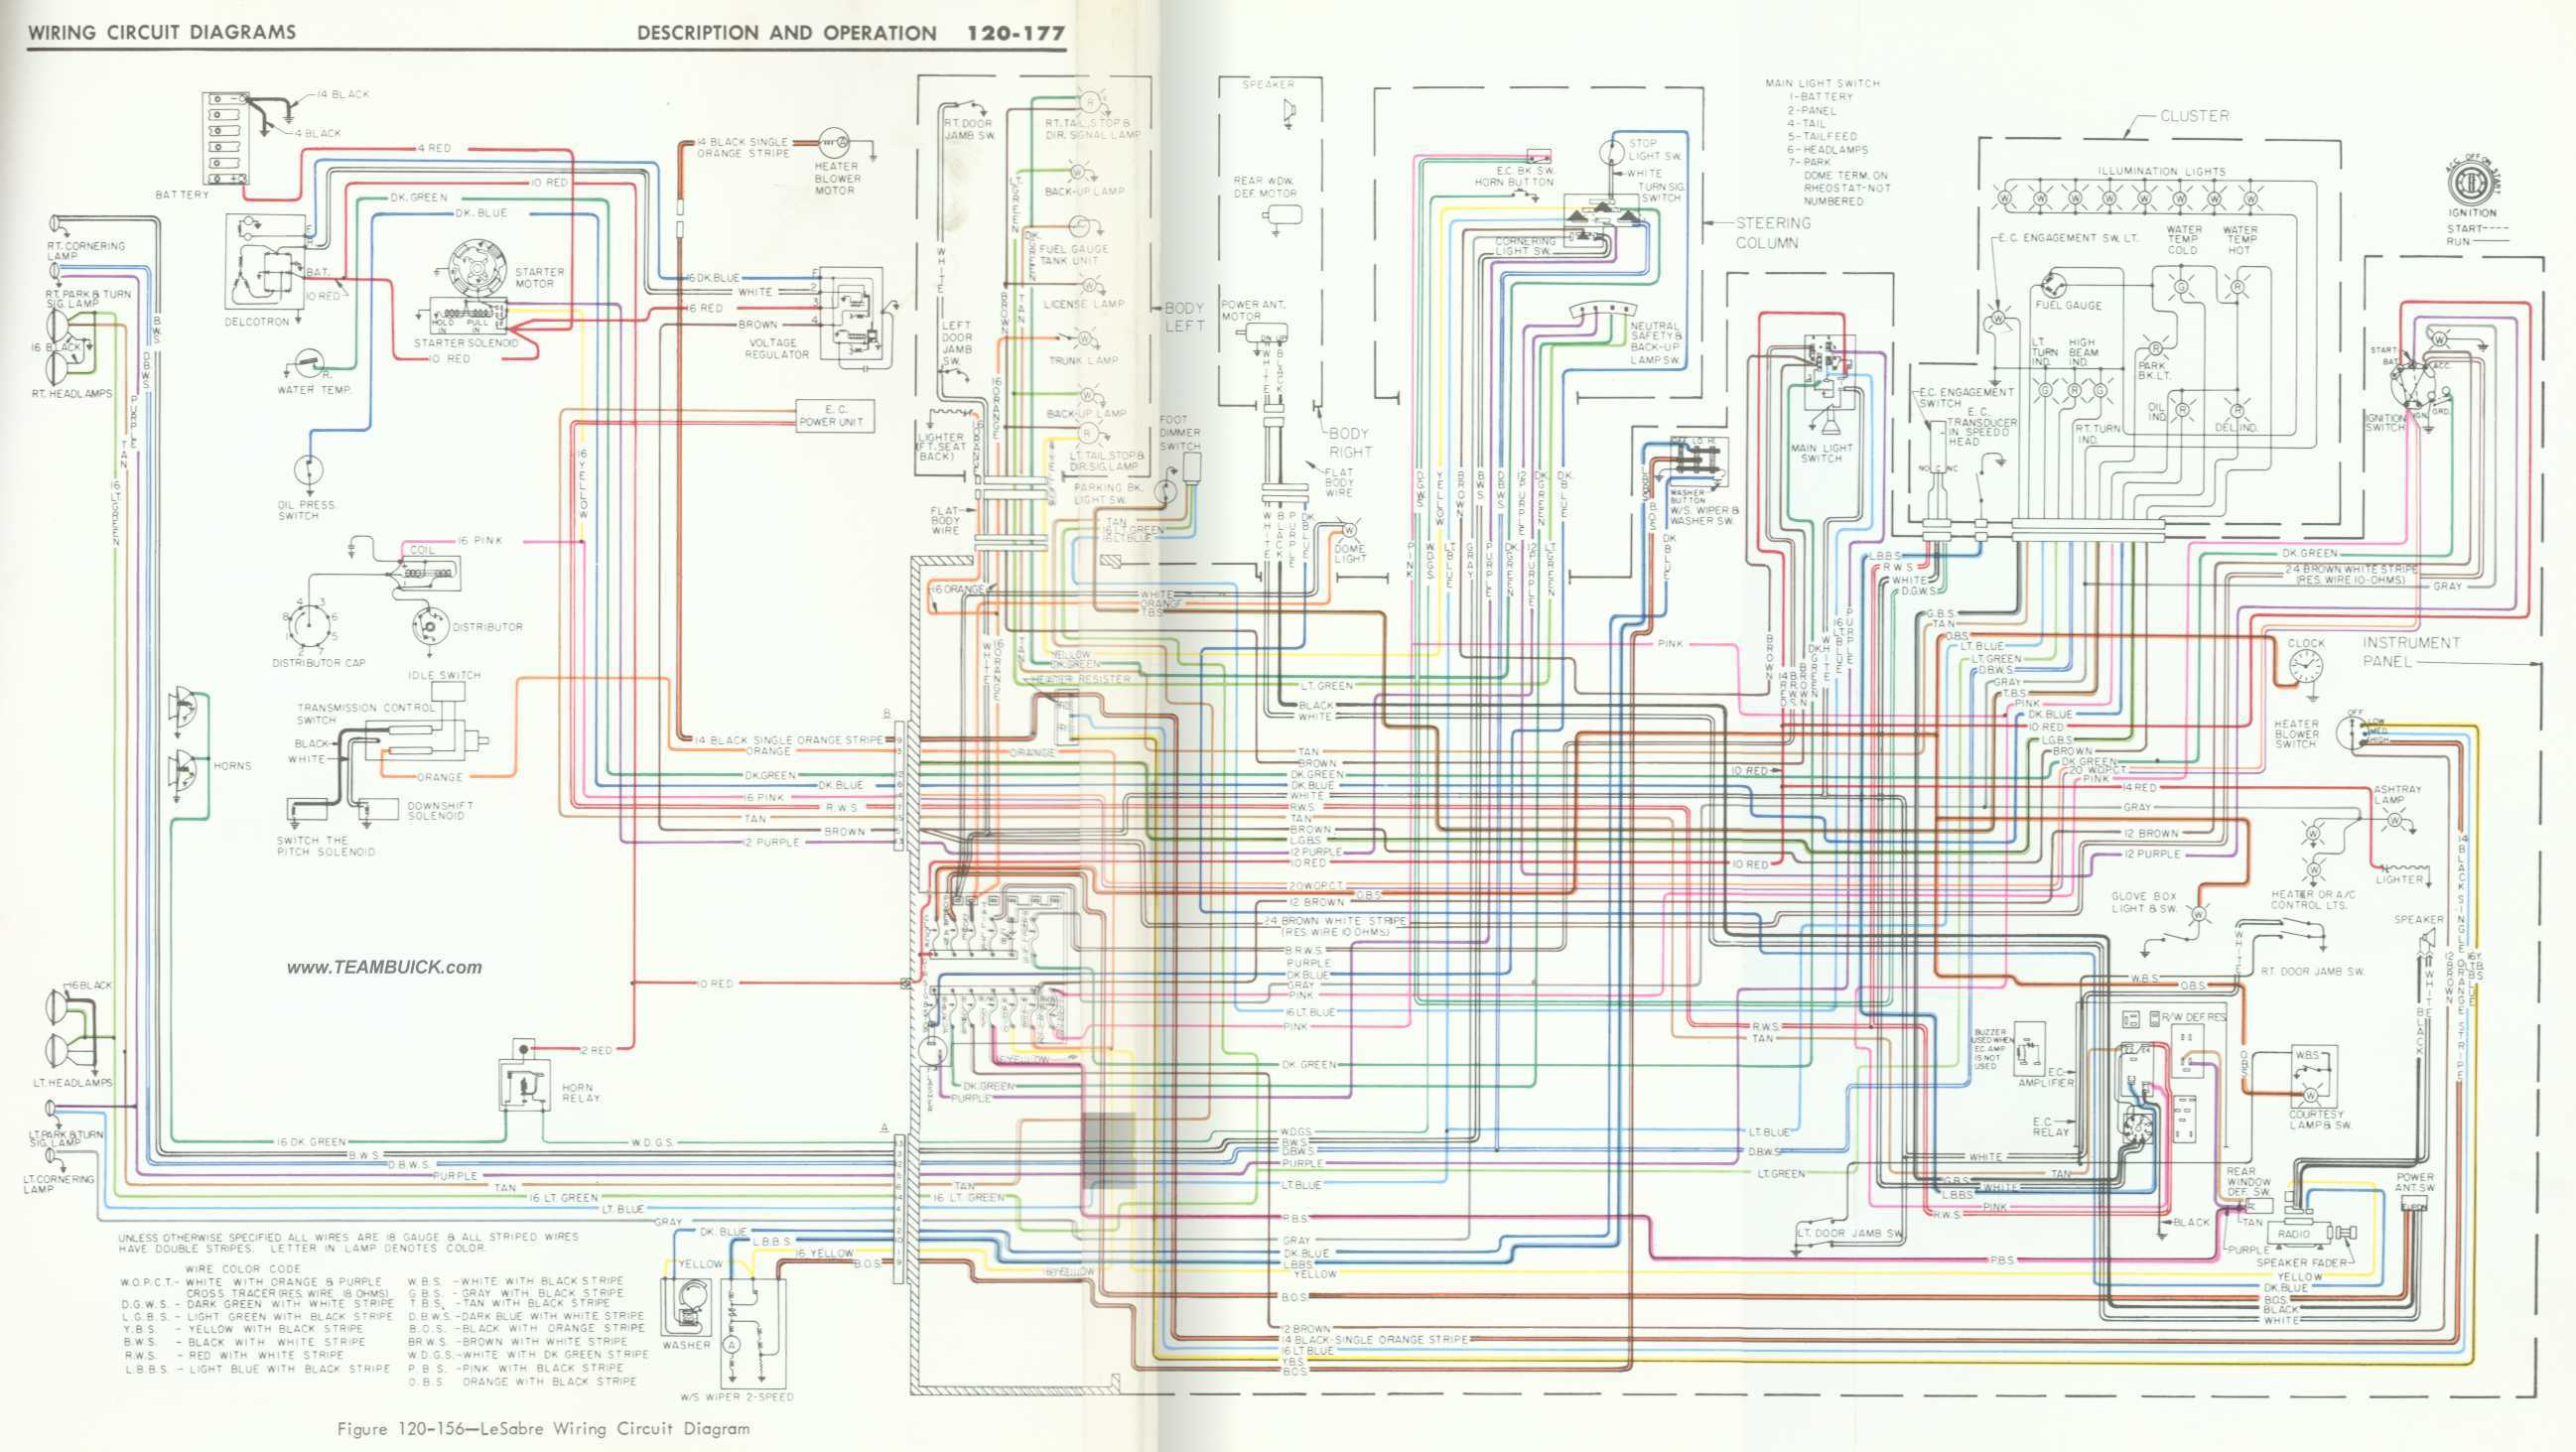 1966 Buick Lesabre Wiring Diagram Right Click To Save Your Computer